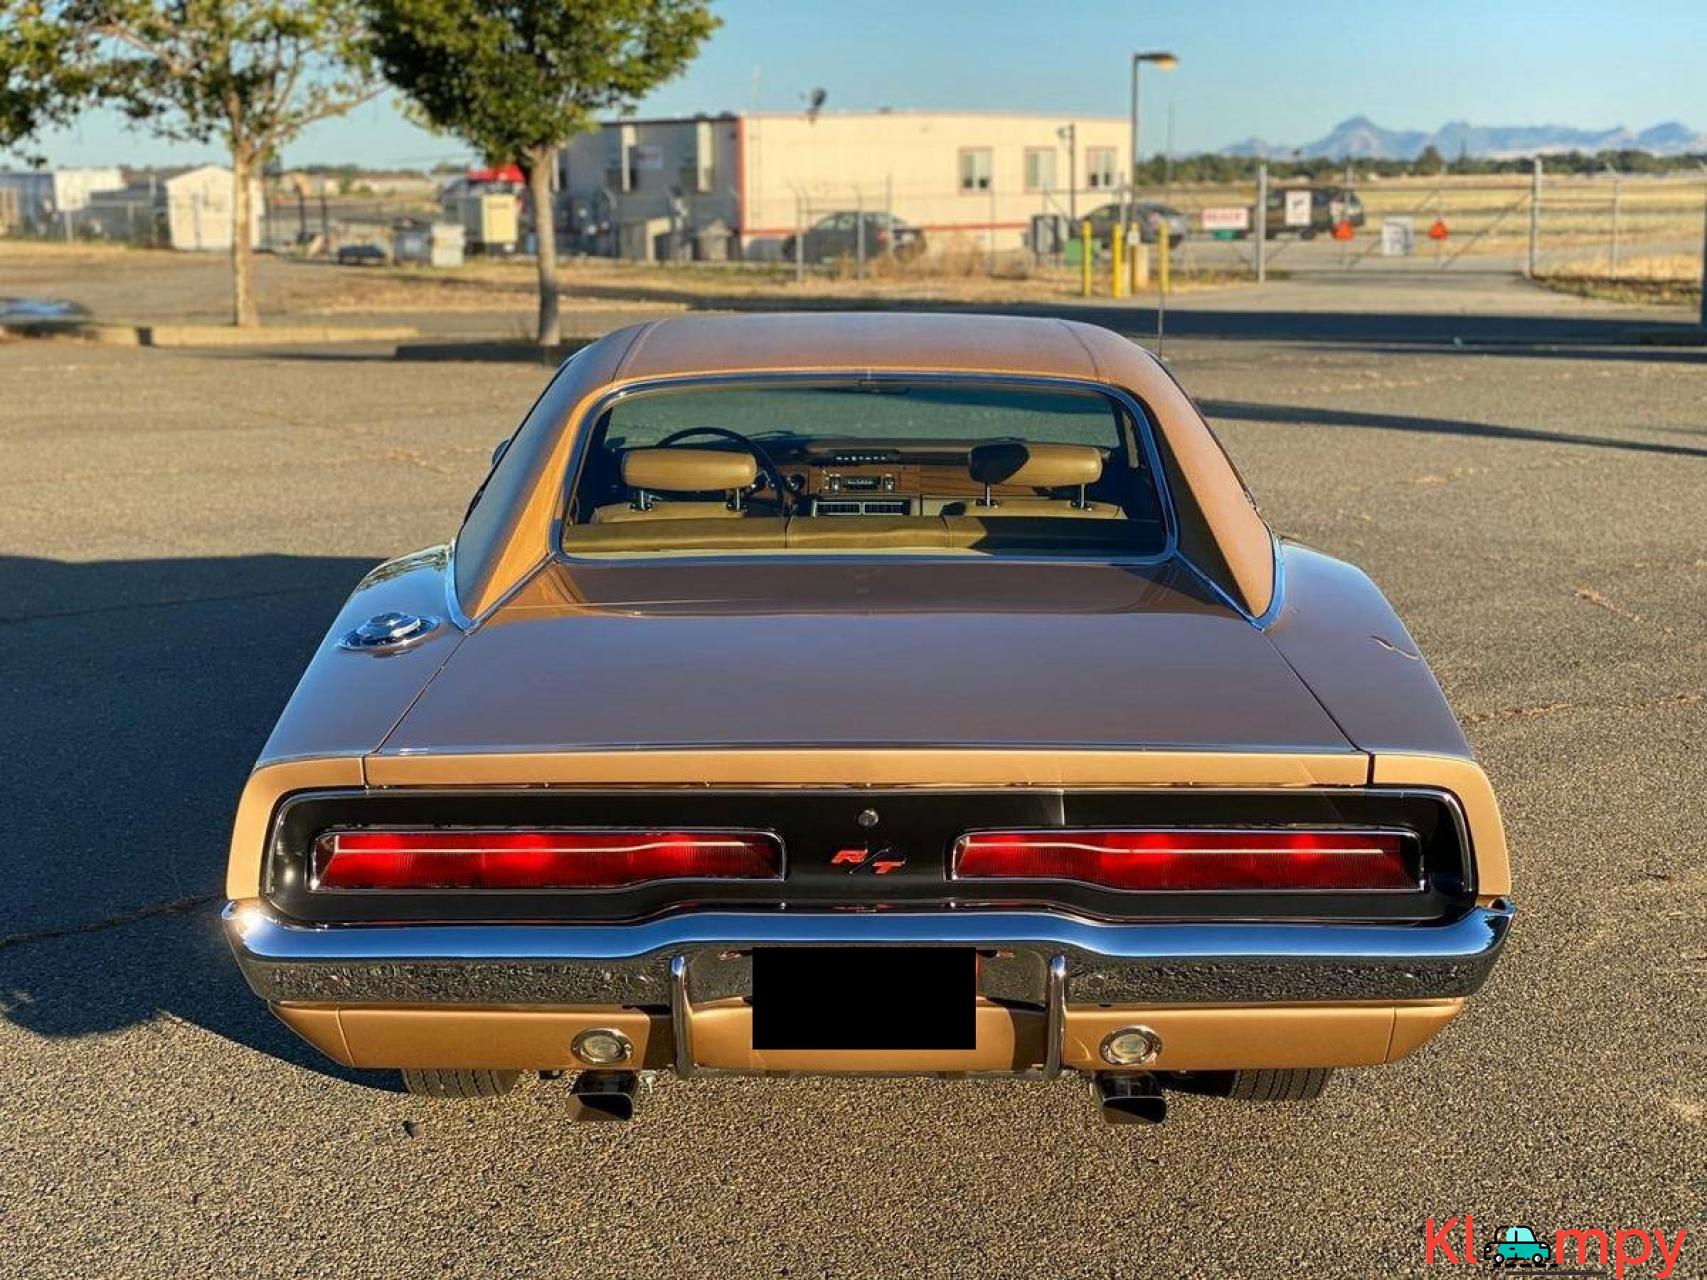 1969 Dodge Charger RT SE 440 375hp High Performance - 5/20